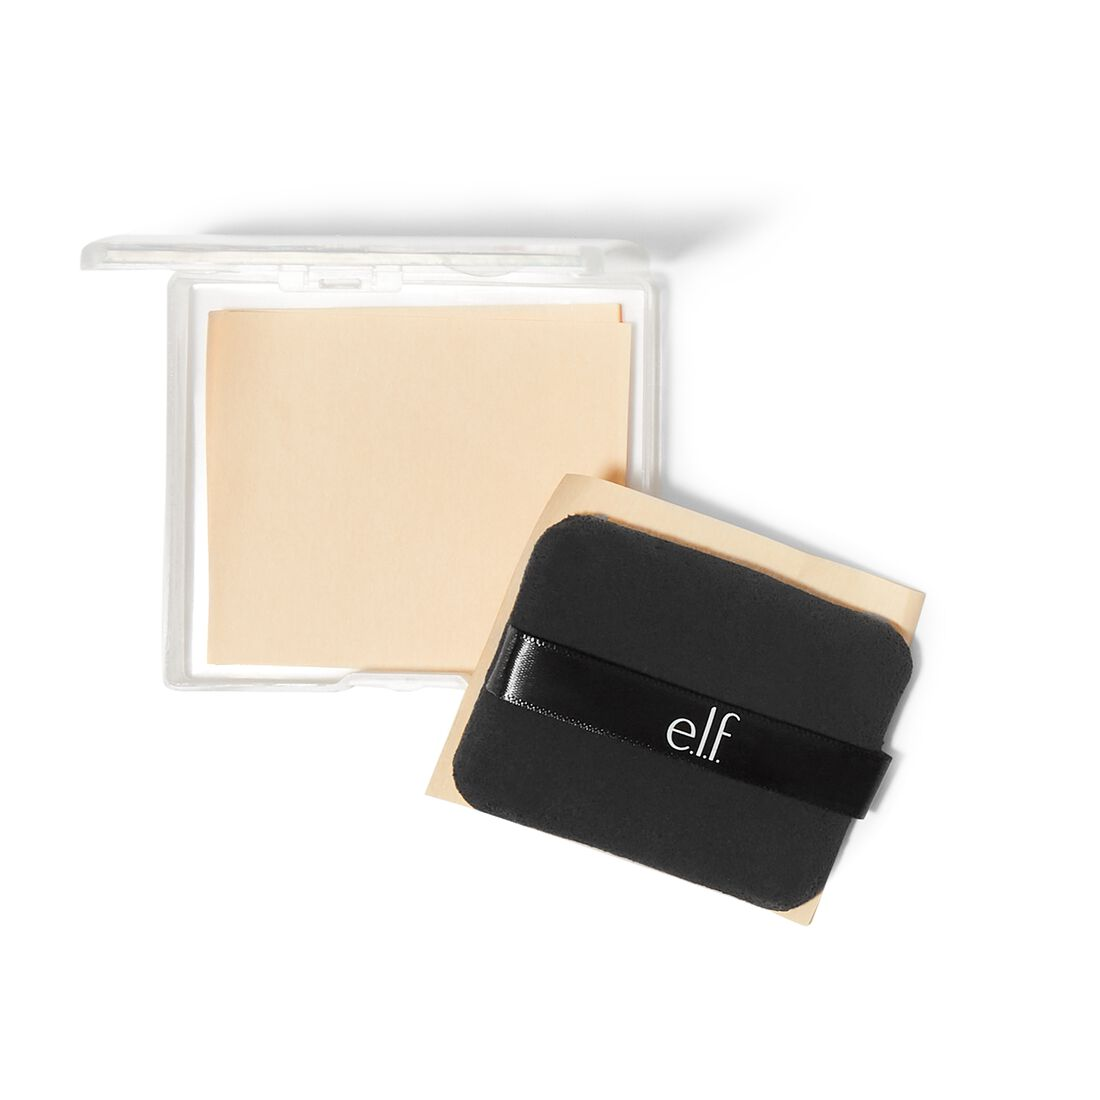 e.l.f. Cosmetics - Mattifying Blotting Papers